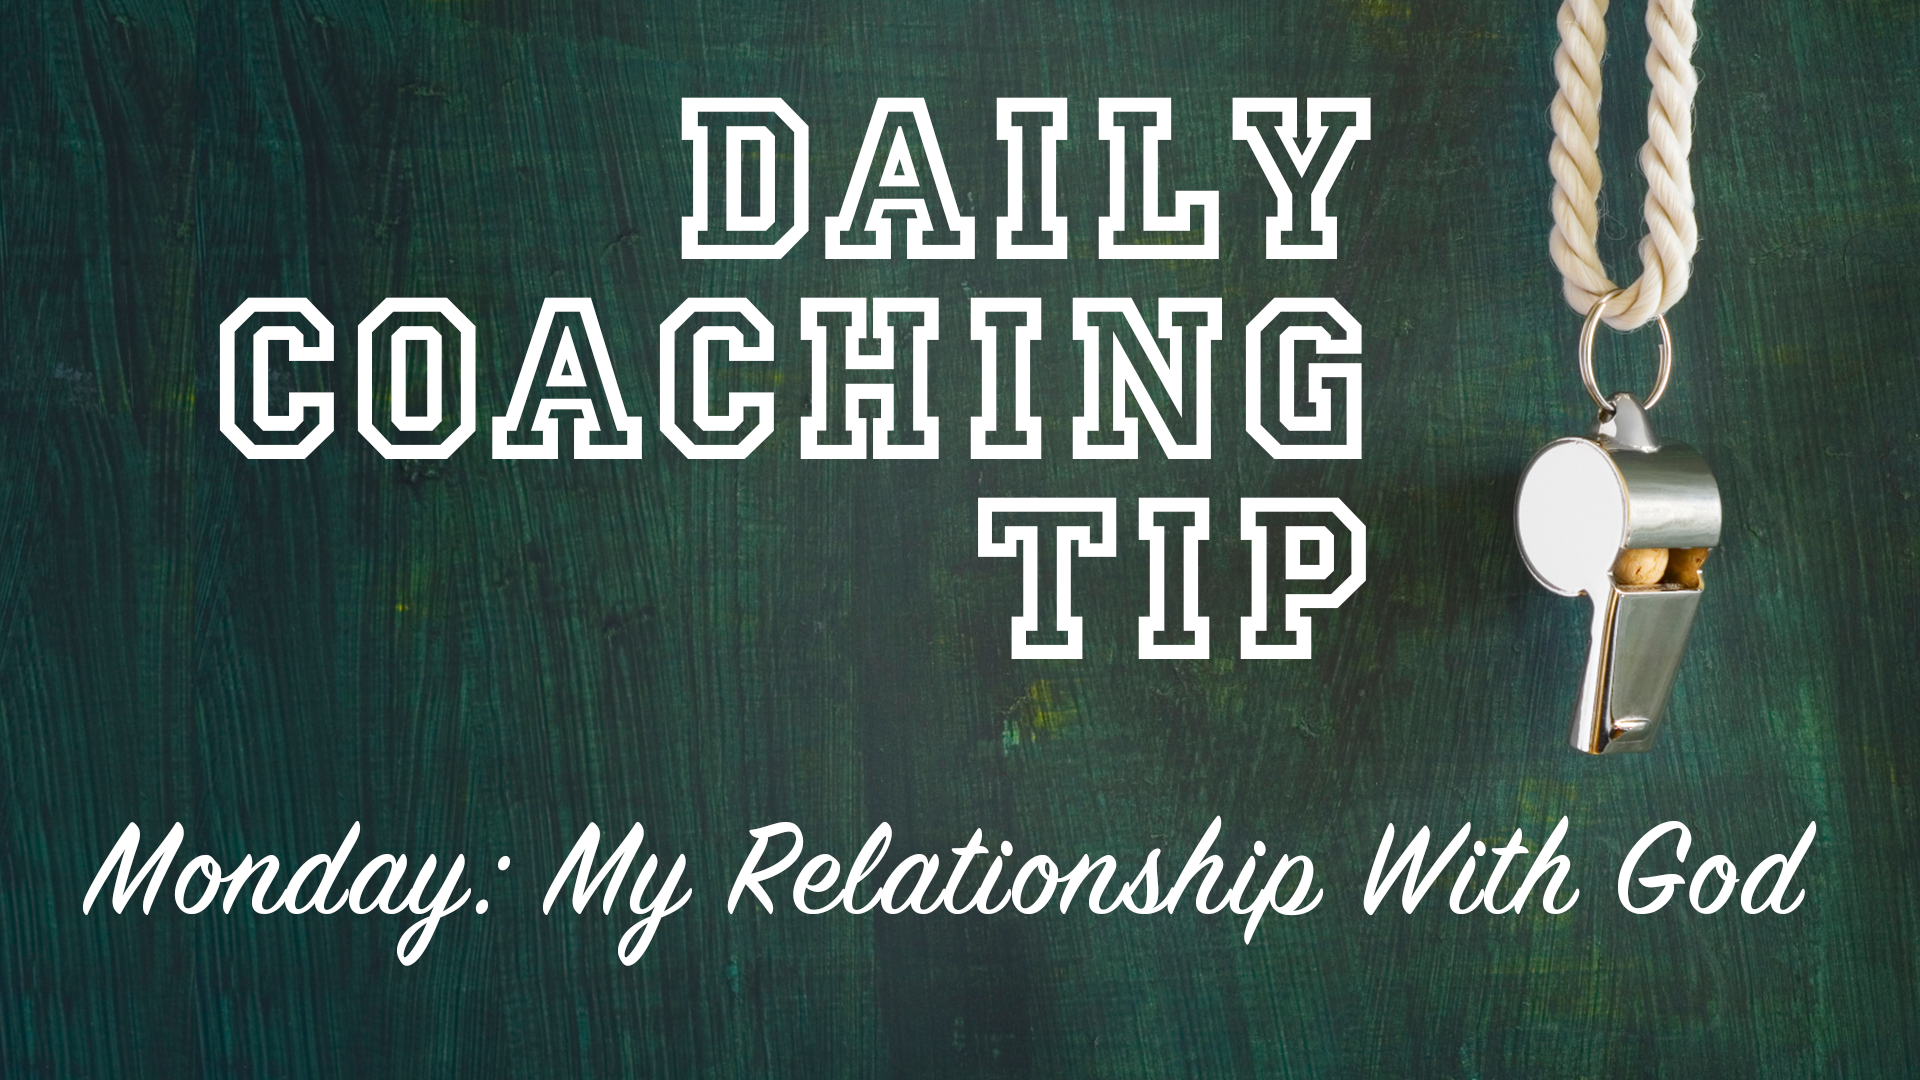 Daily Coaching Tip, Monday, April 25, 2016